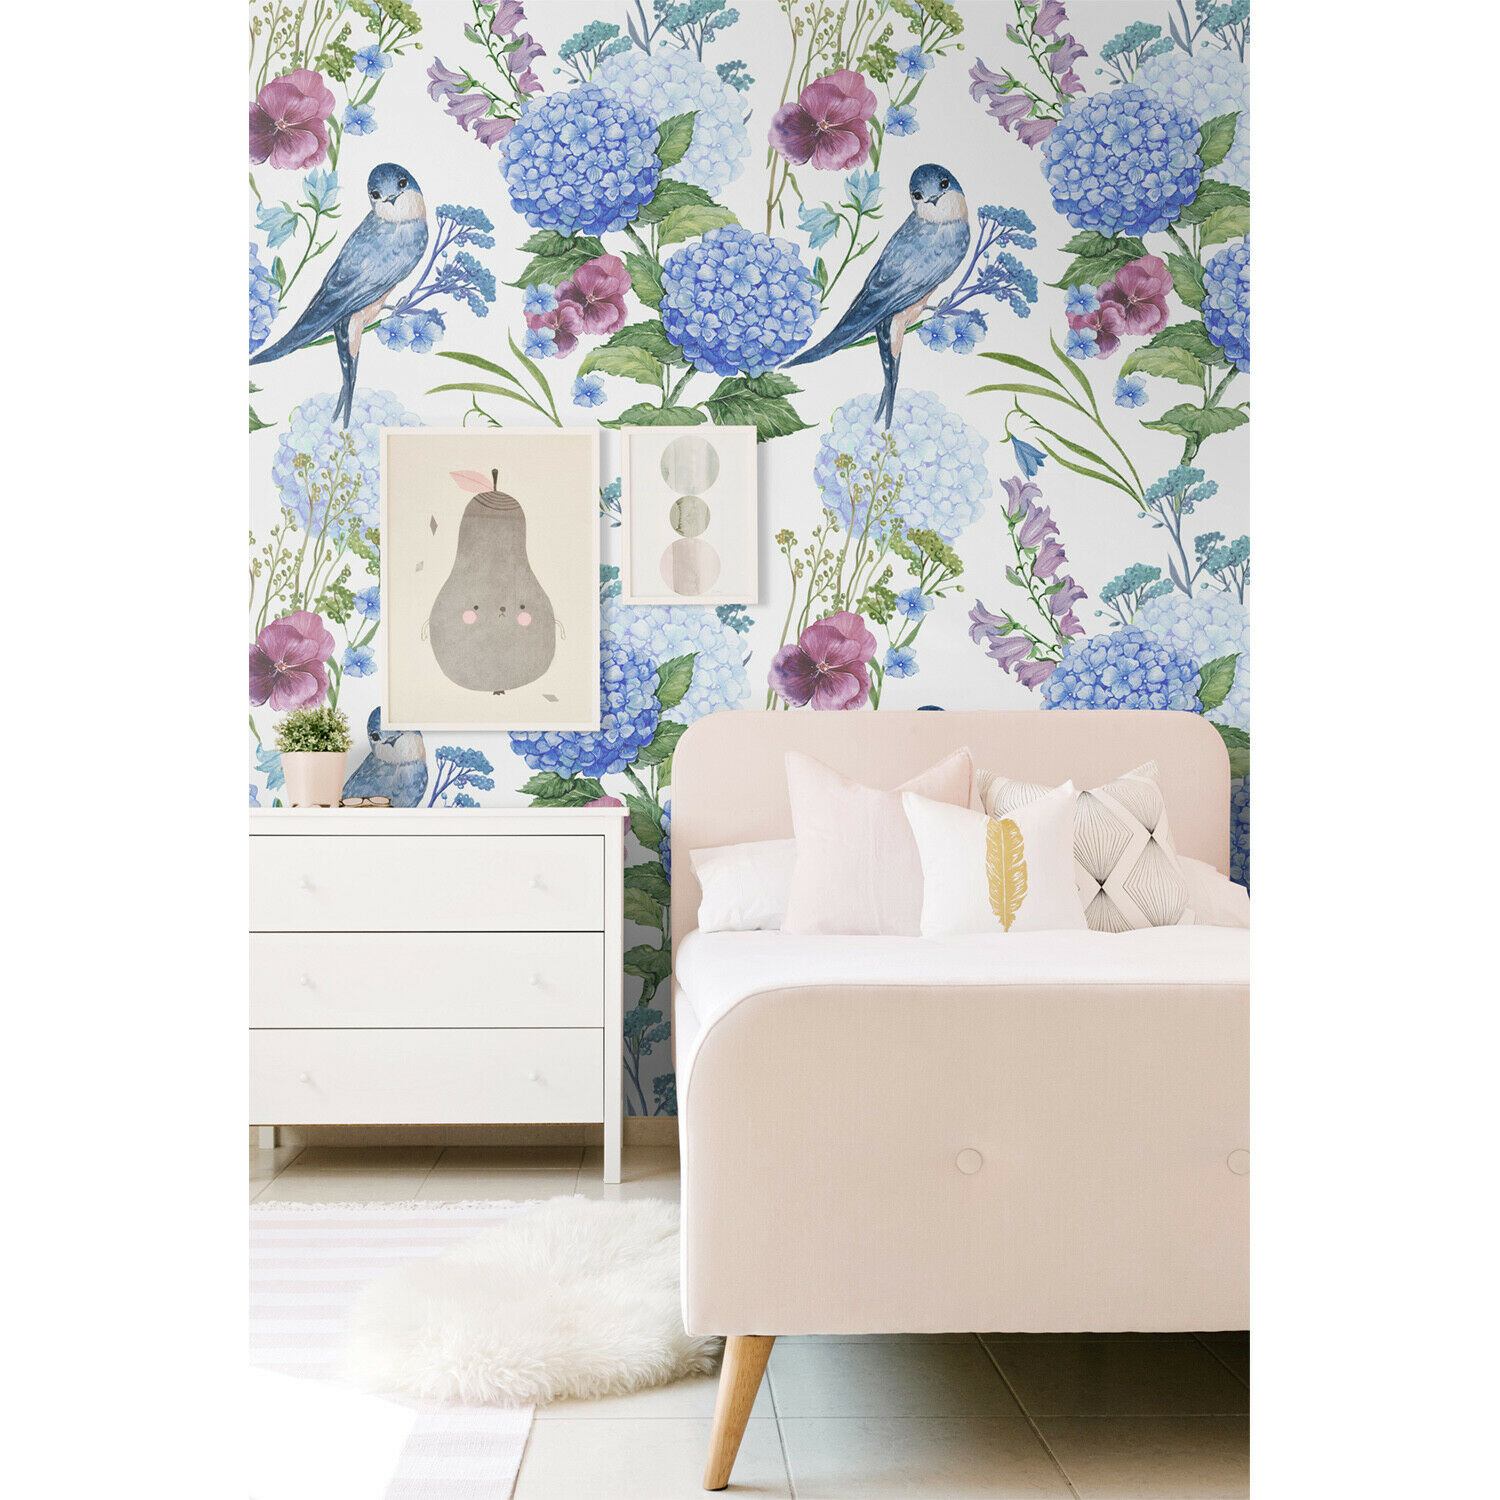 Removable Wall Wall Wall Mural Adhesive Birds Flowers